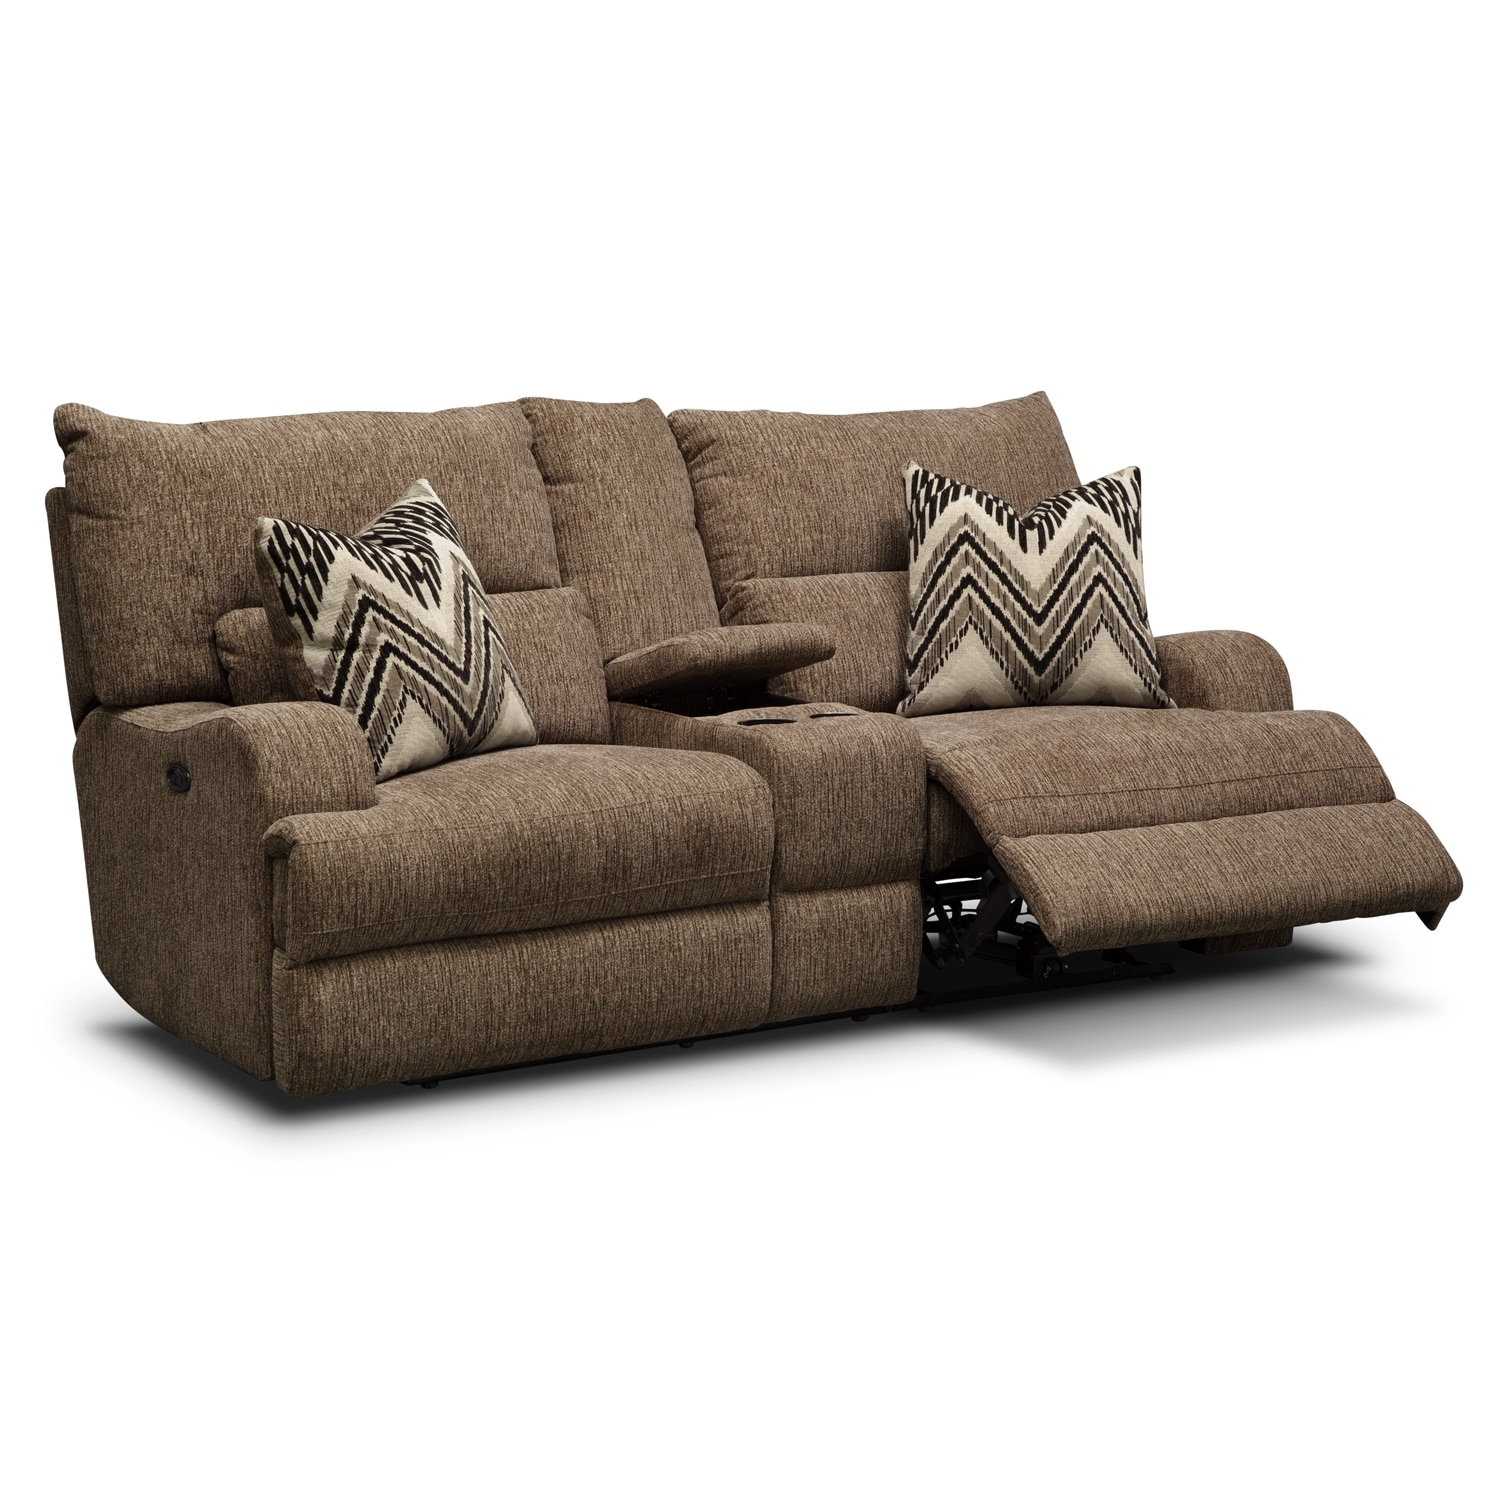 Loveseat Sofa Bed Dimensions picture on Loveseat Sofa Bed Dimensions1610313.aspx with Loveseat Sofa Bed Dimensions, sofa a3f7a8203d769a8903840f7839a00385